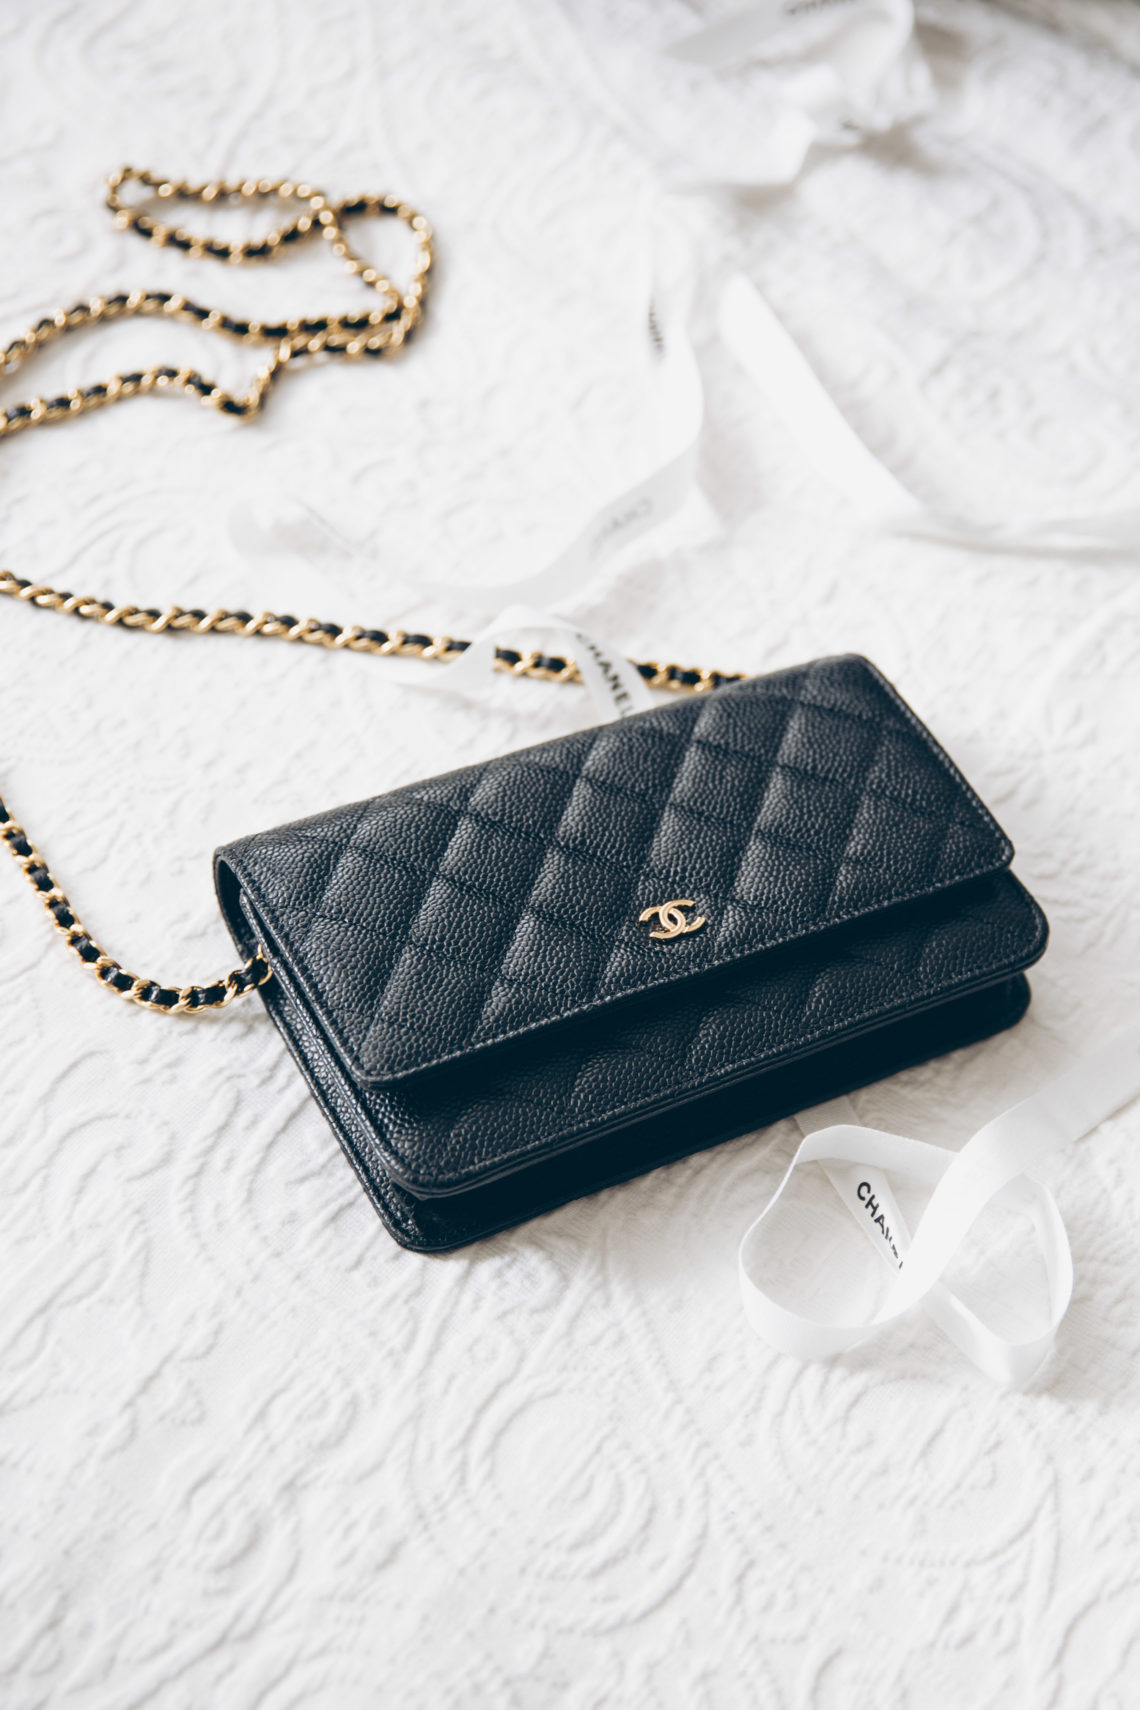 f04a19f4ccdceb Review: Chanel Wallet On Chain WOC | you rock my life